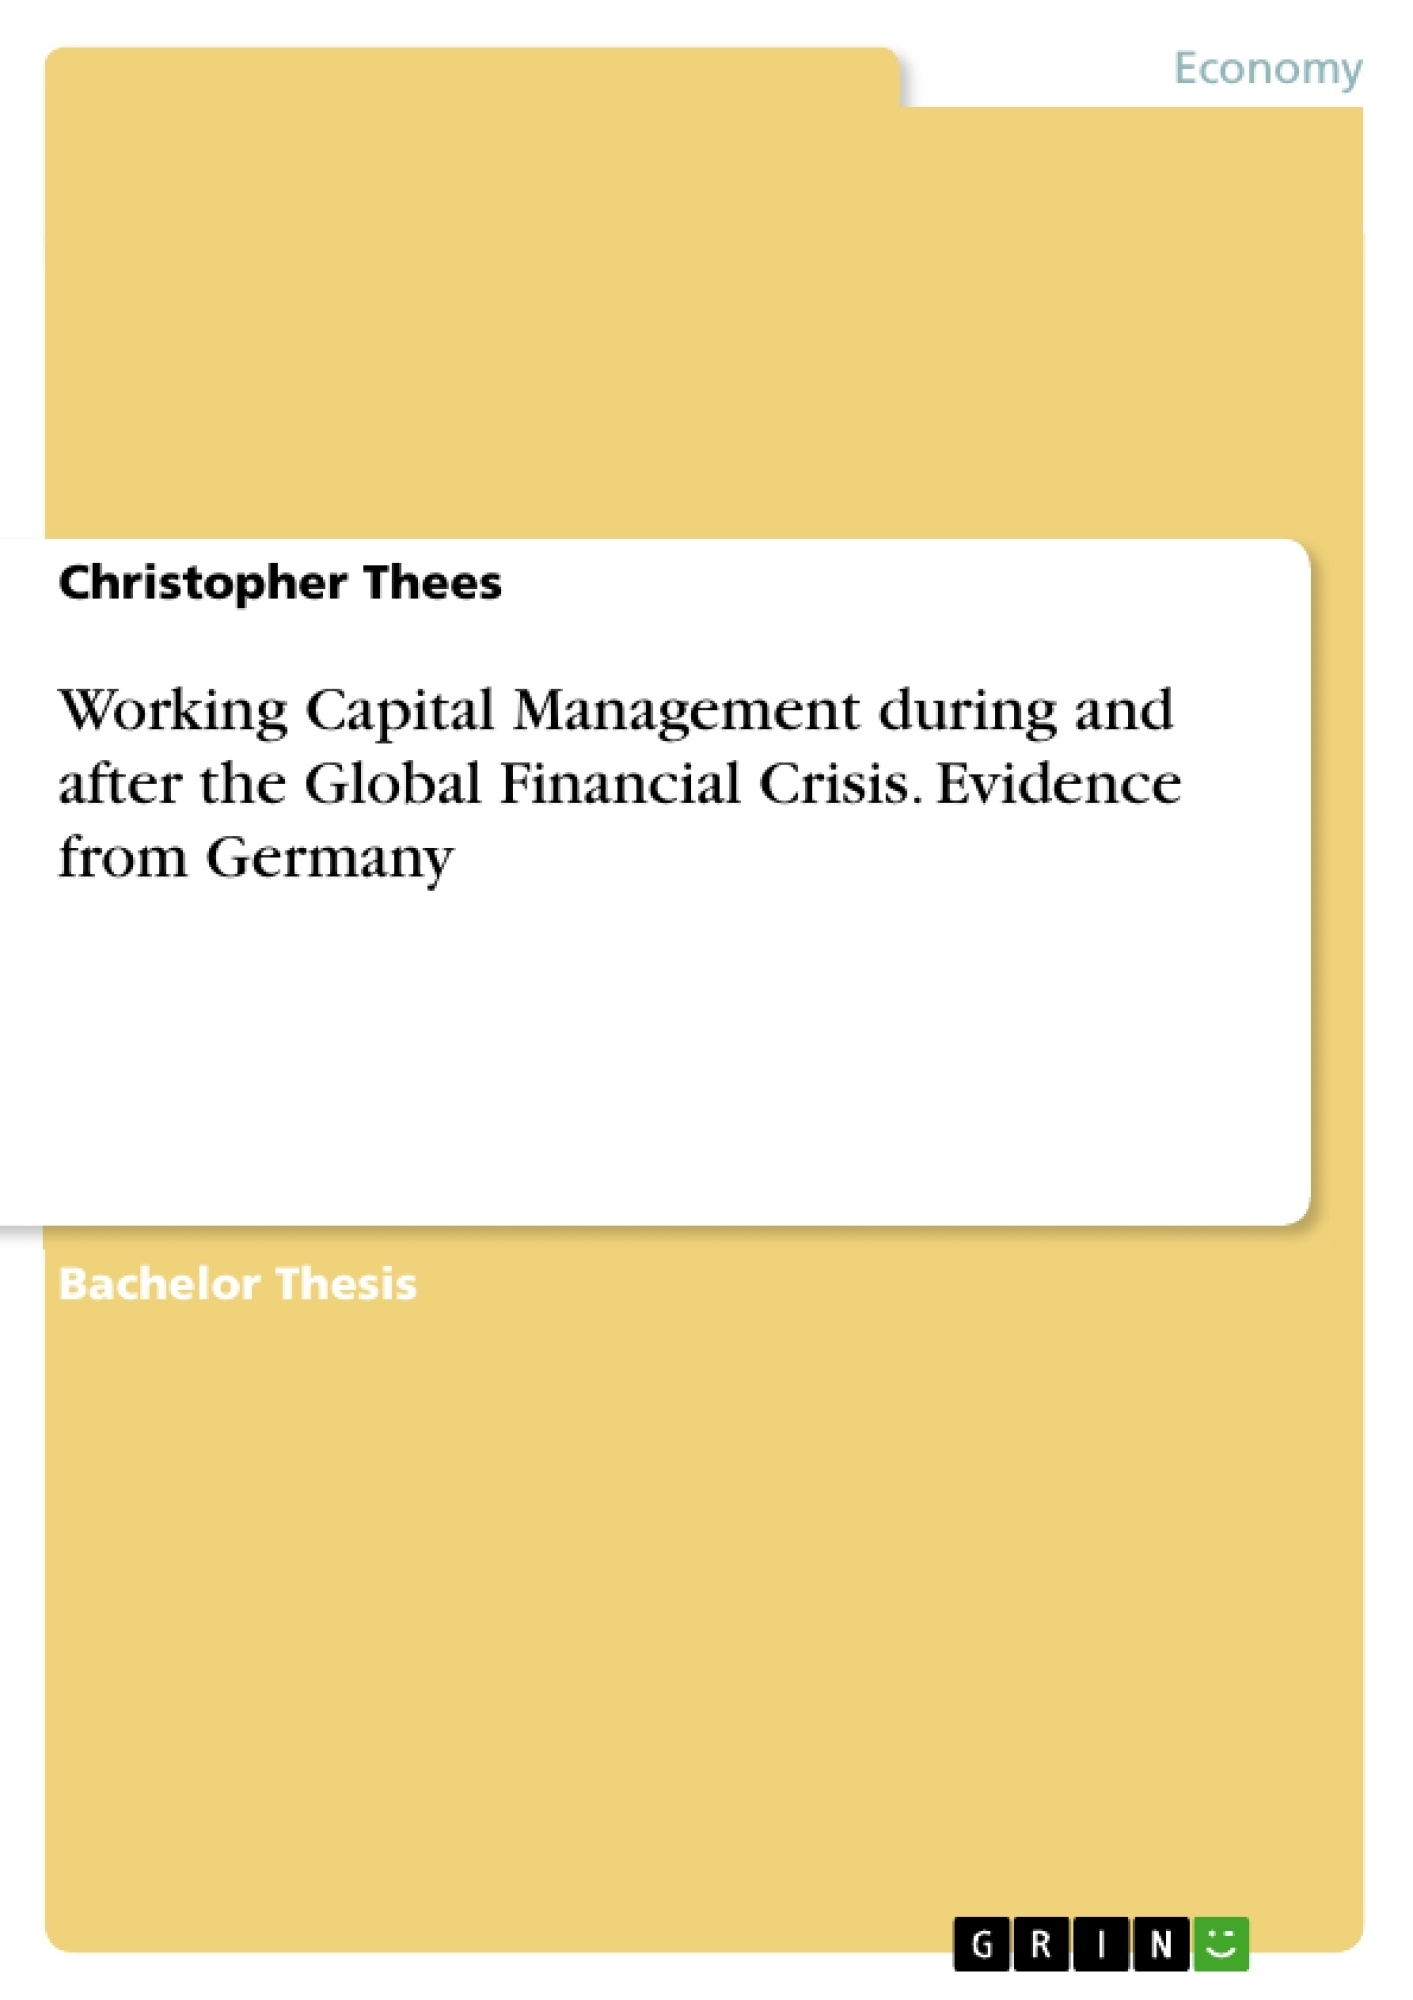 Title: Working Capital Management during and after the Global Financial Crisis. Evidence from Germany